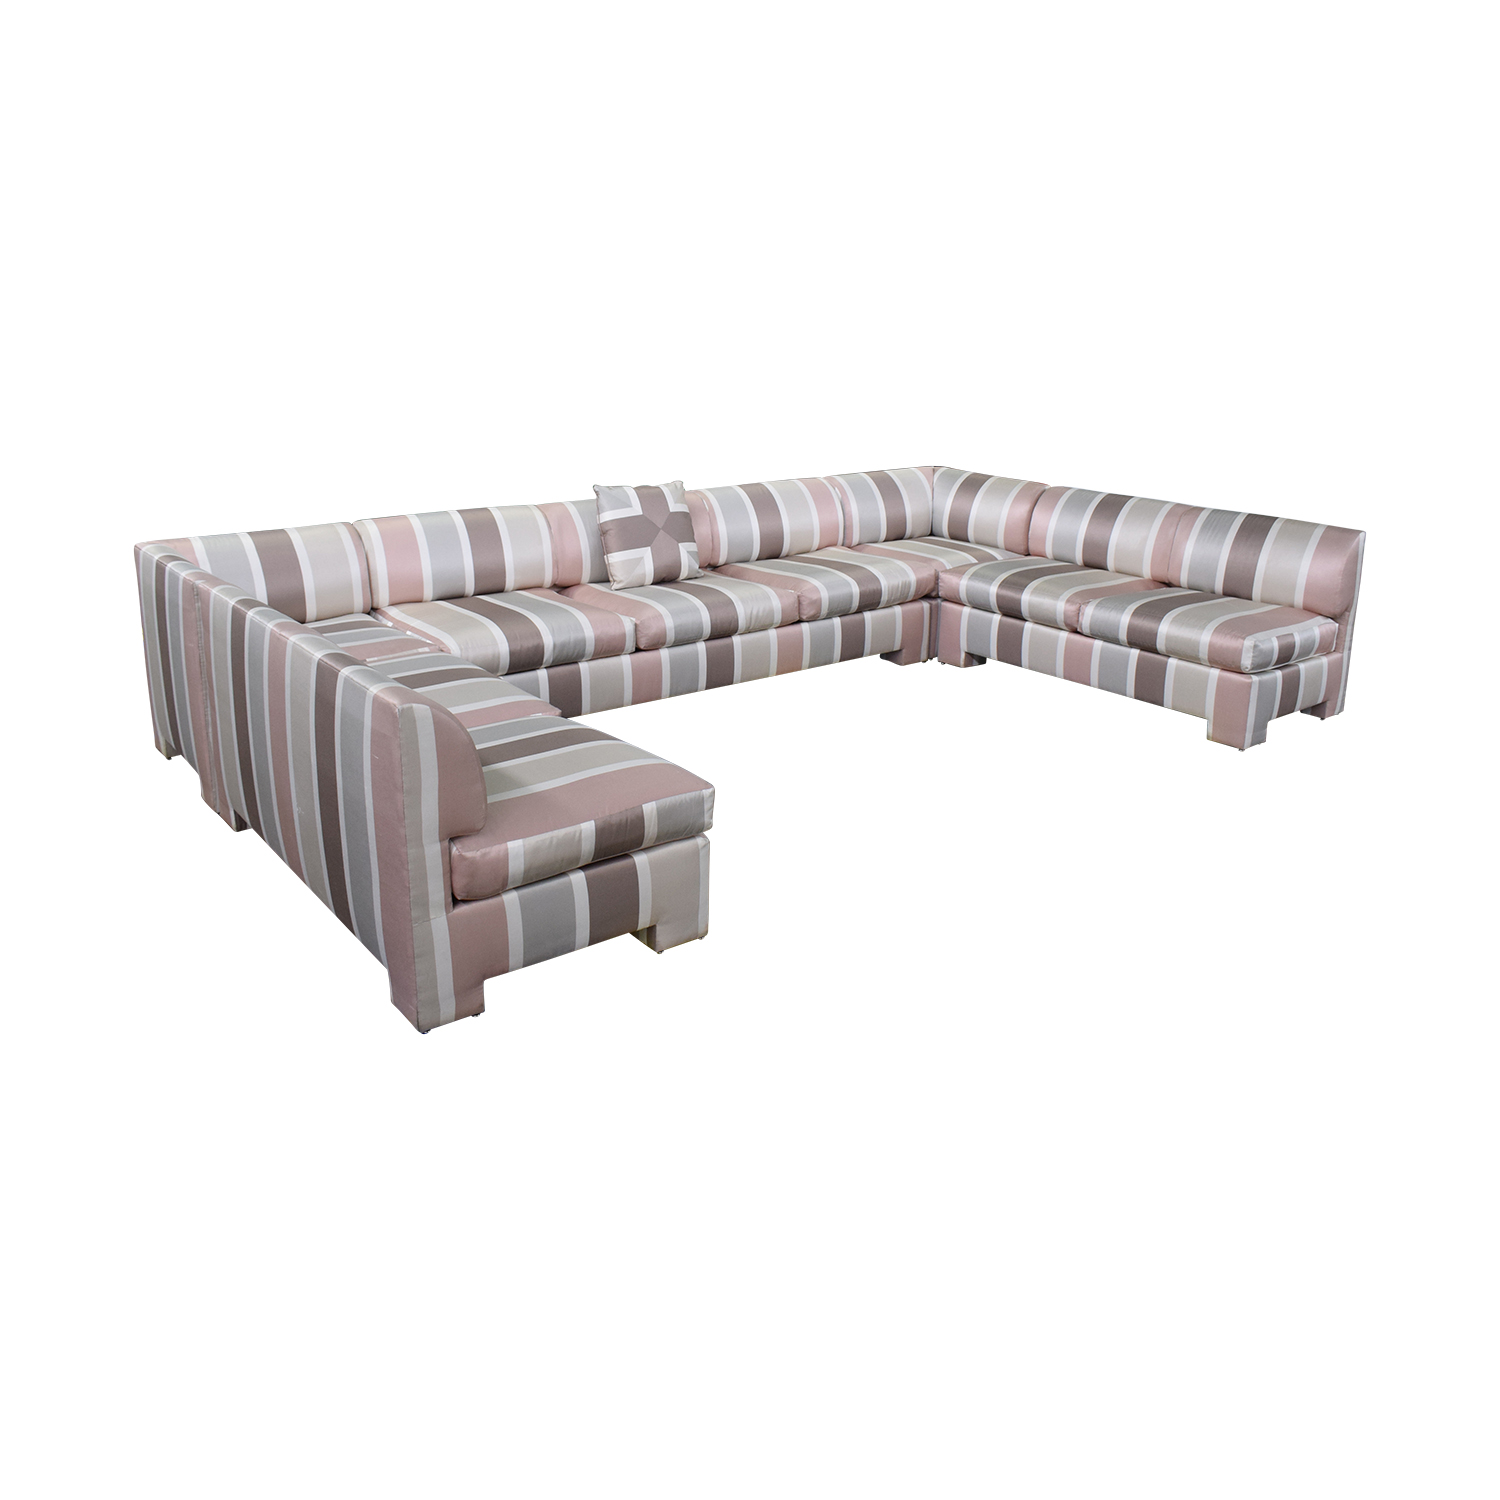 Custom Pink Striped Sectional Sofa nj